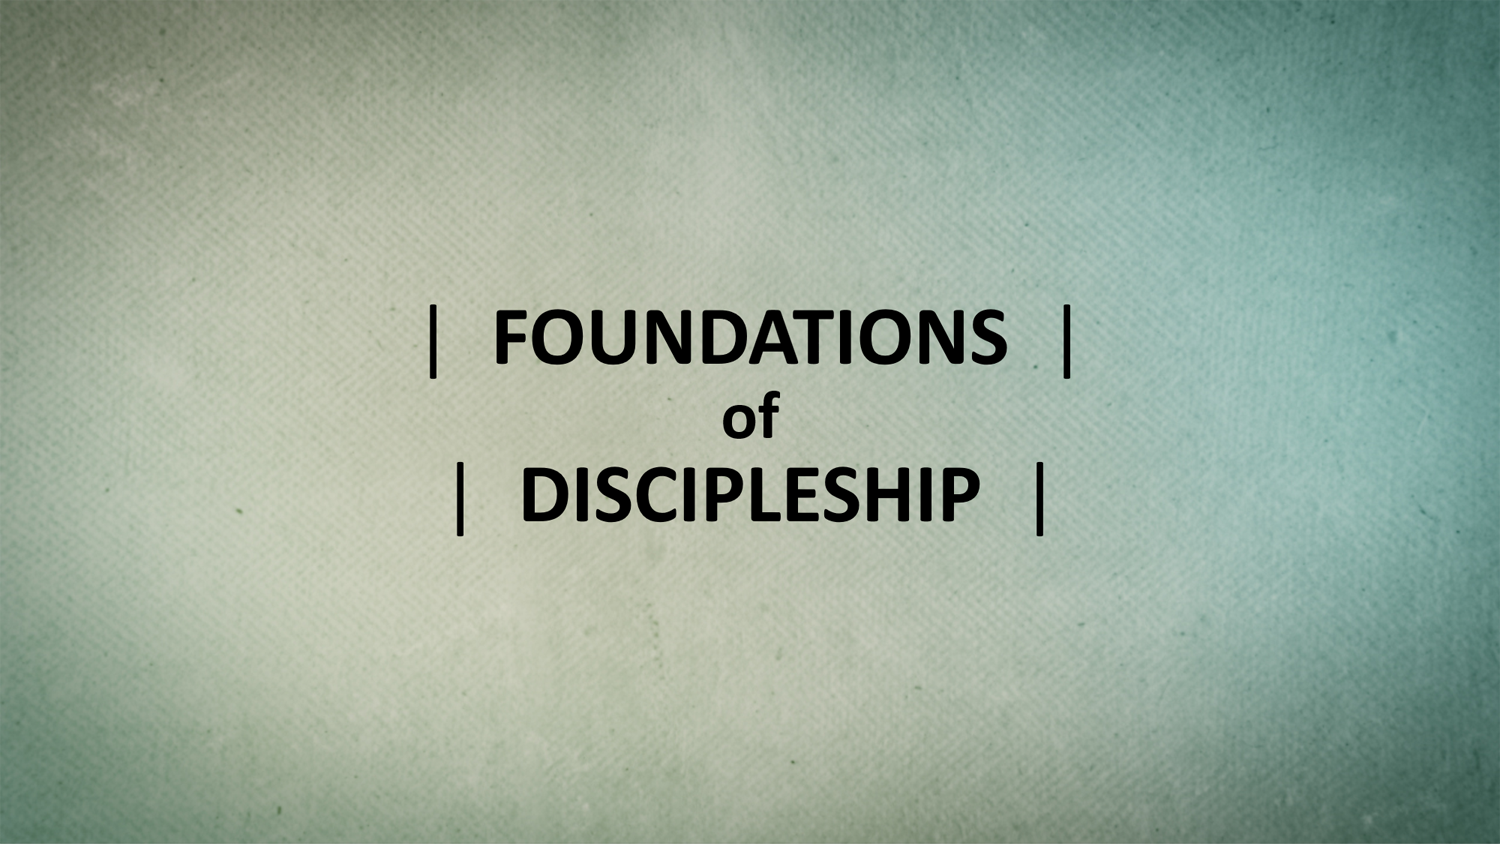 Foundations of Discipleship